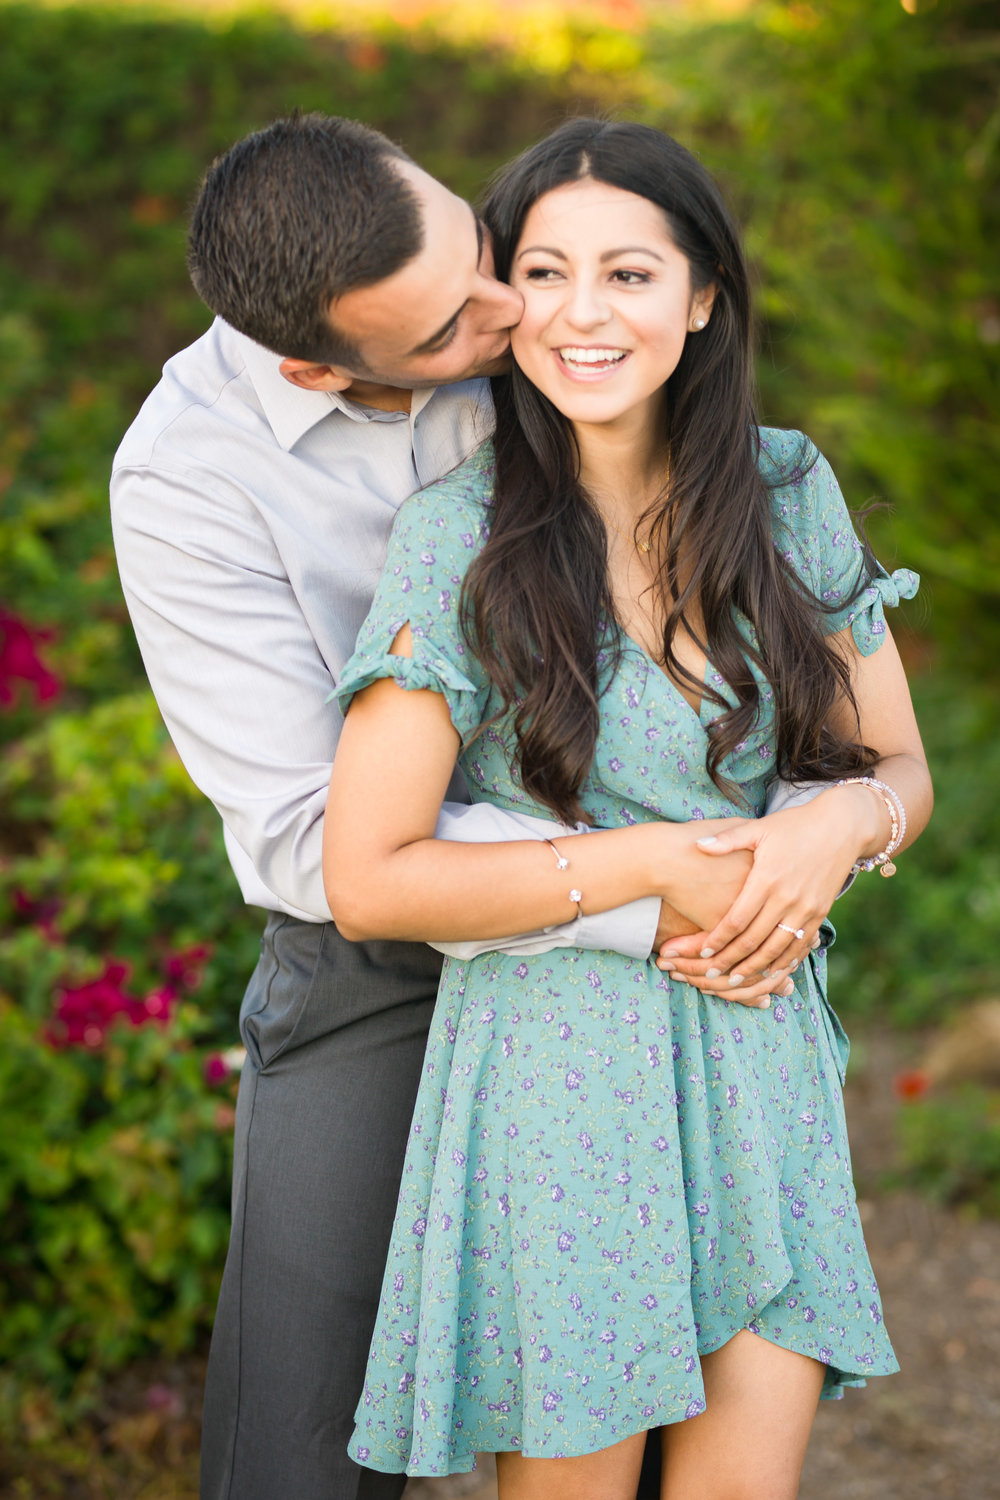 Will&VictoriaProposal-52.jpg